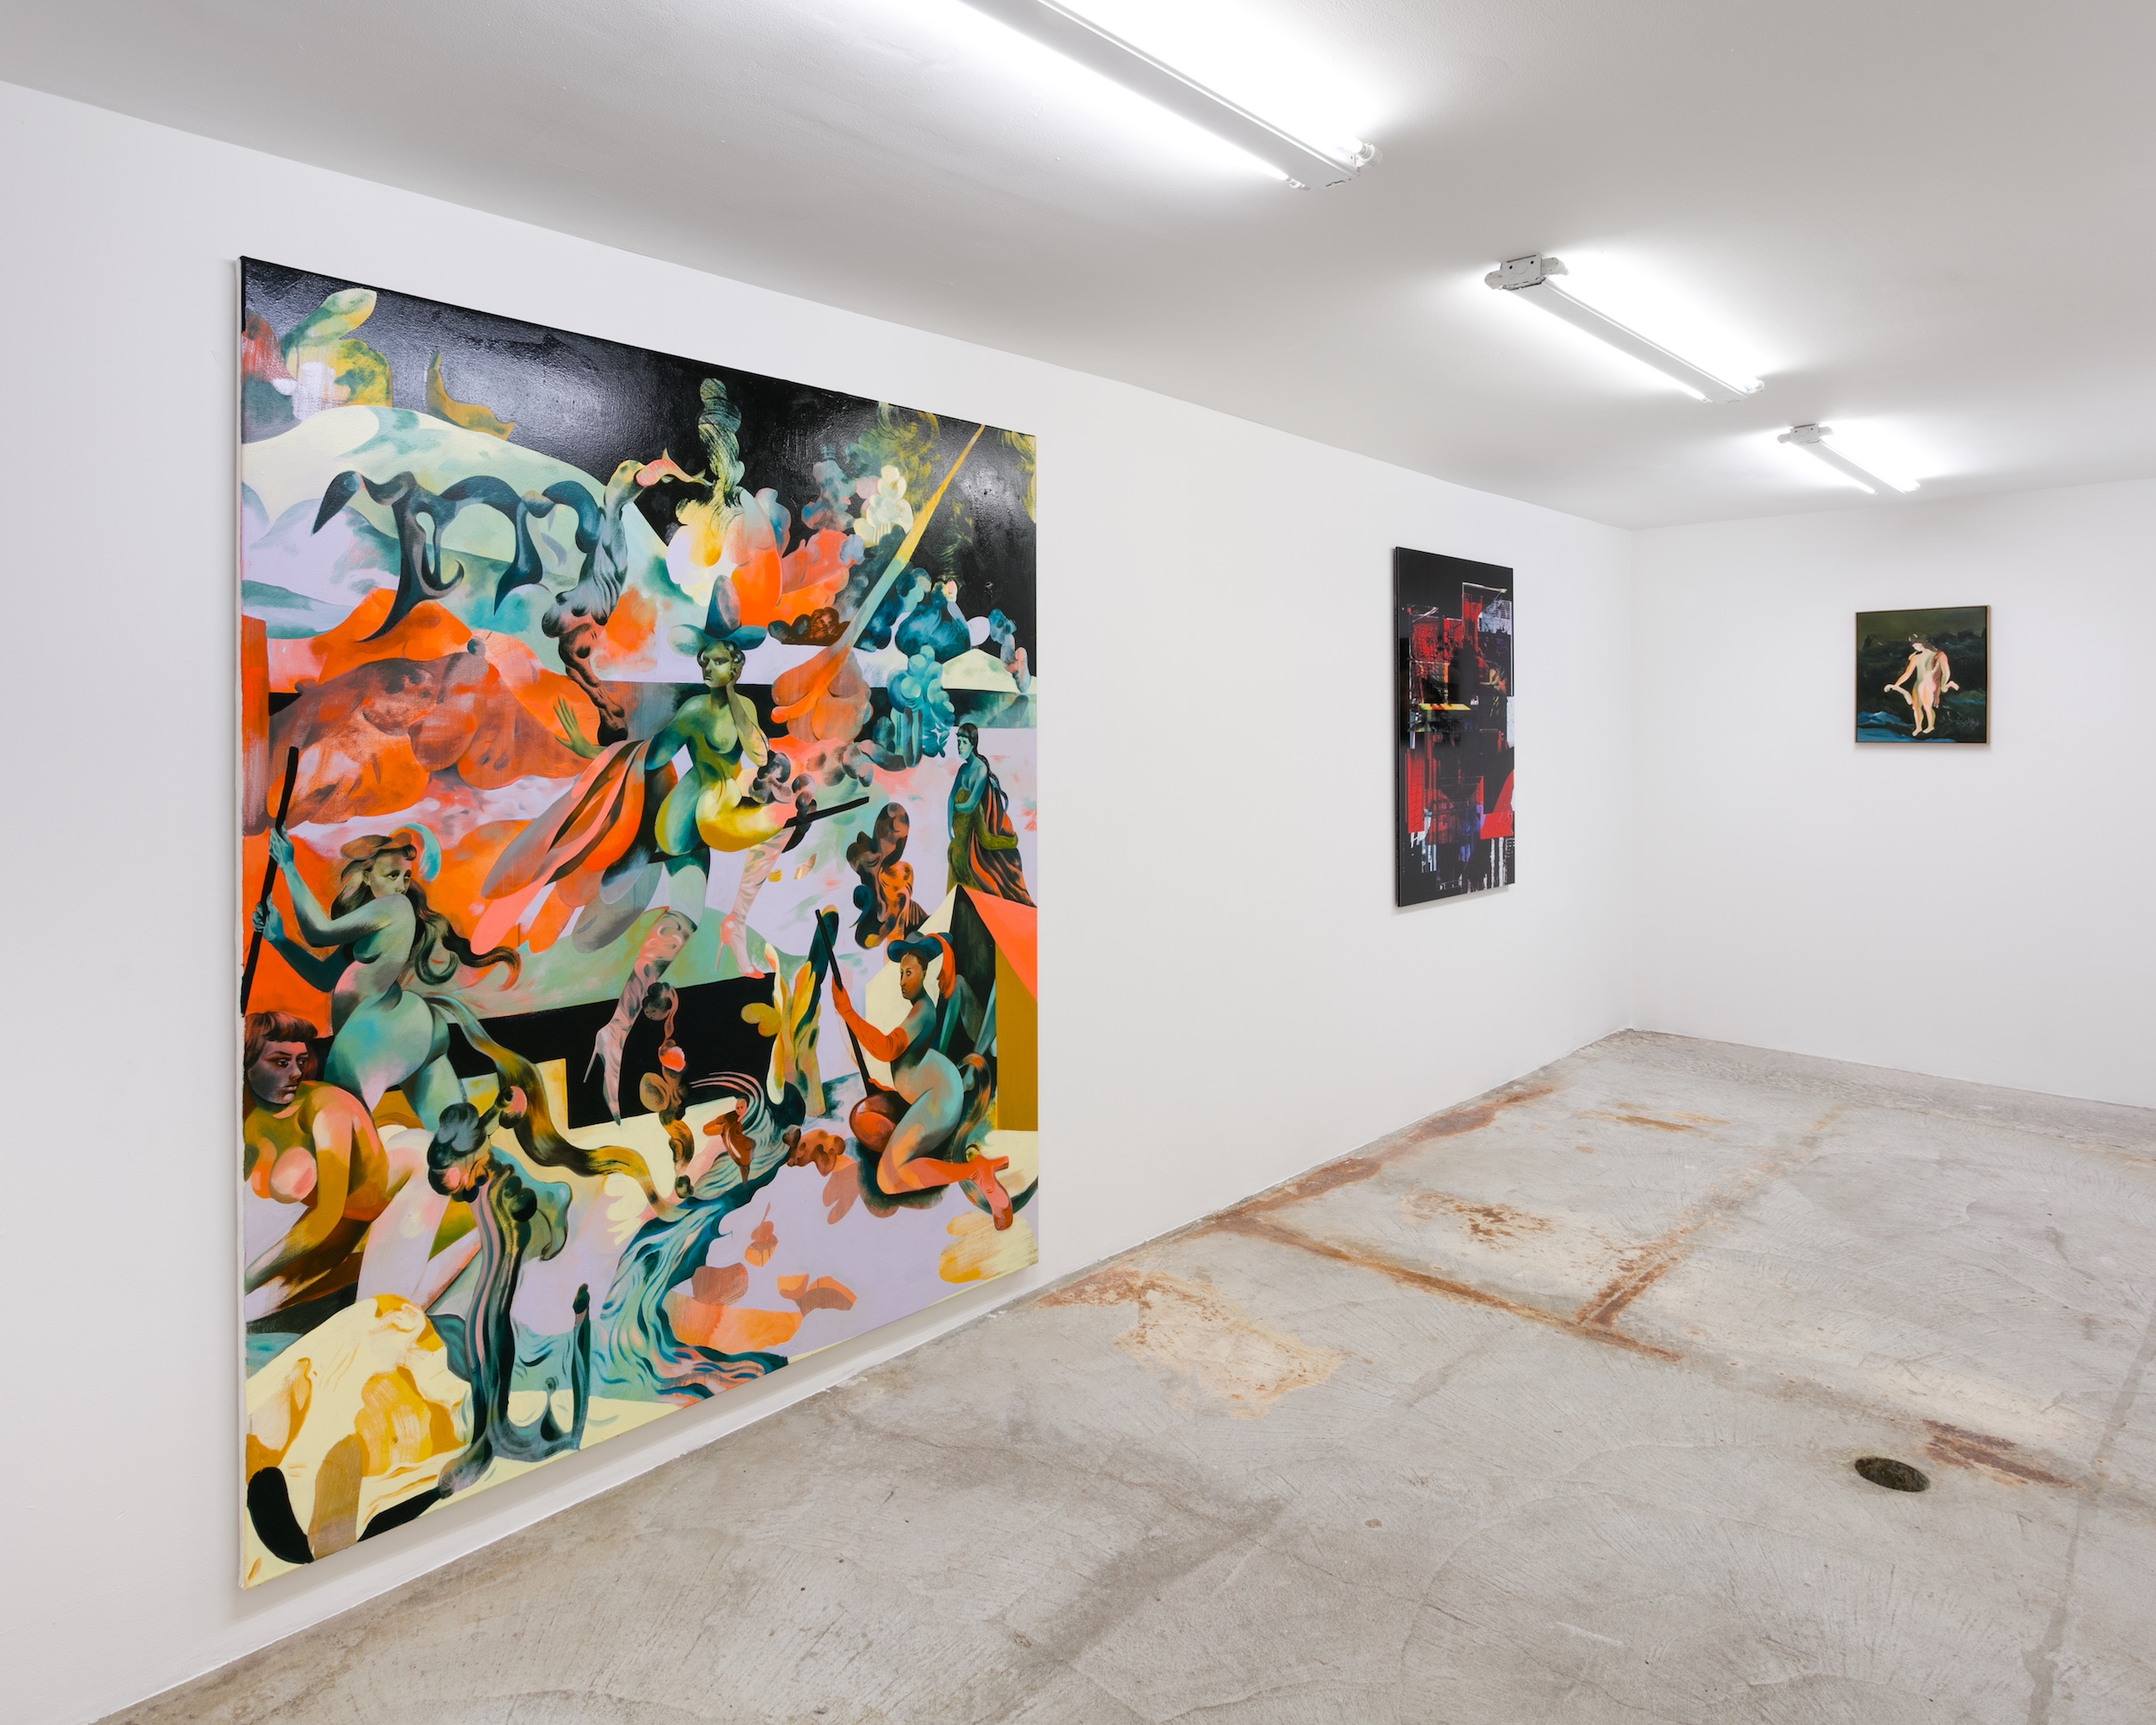 Jessie Makinson,  Dead Eden,  Installation view at Lyles & King, June 6 - August 3, 2018